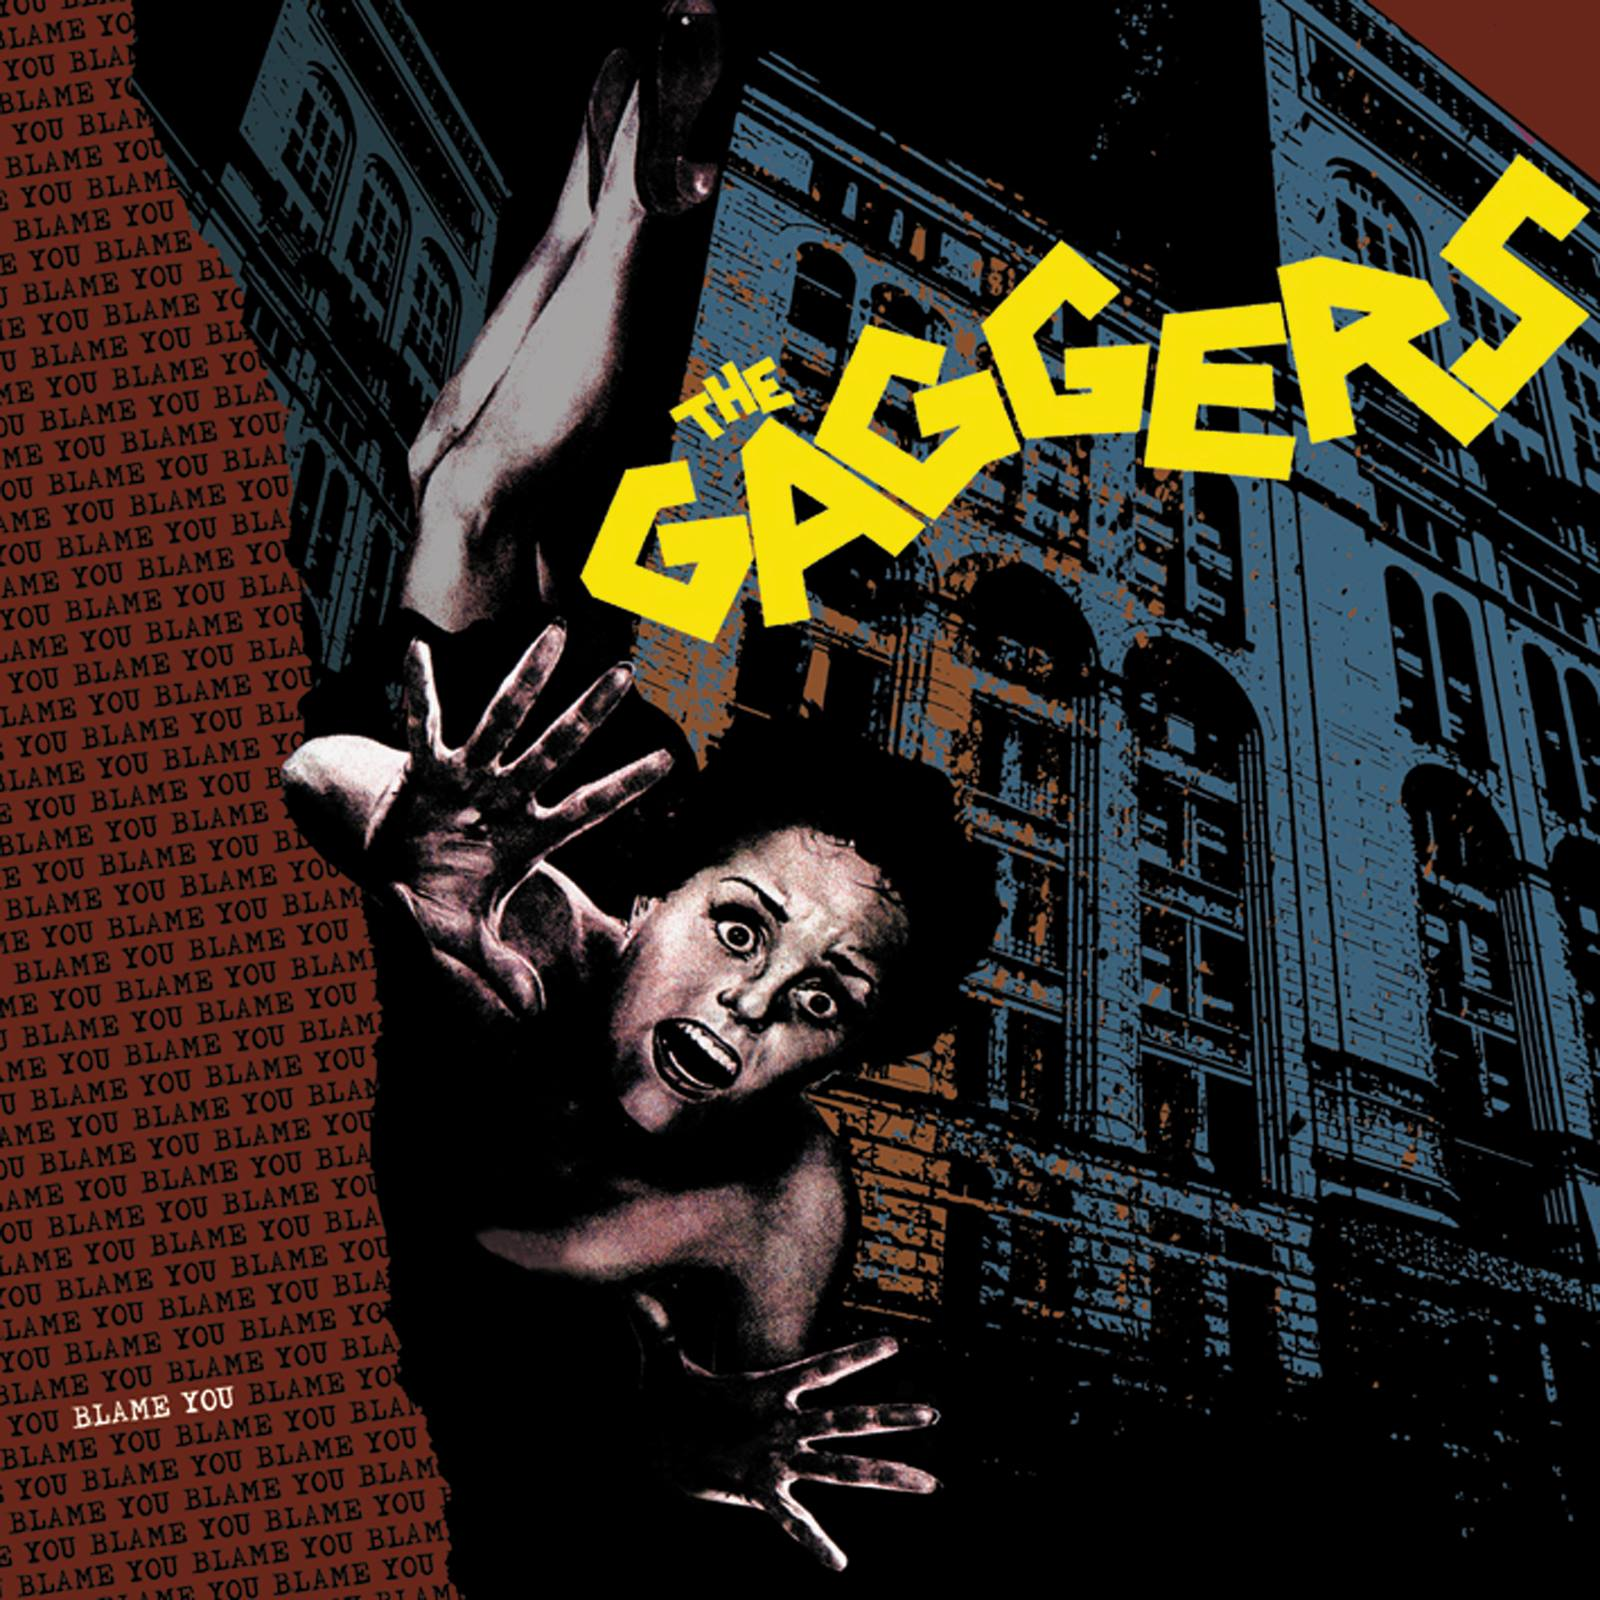 The Gaggers 2nd Album Blame you is finally out today on vinyl and Itunes!